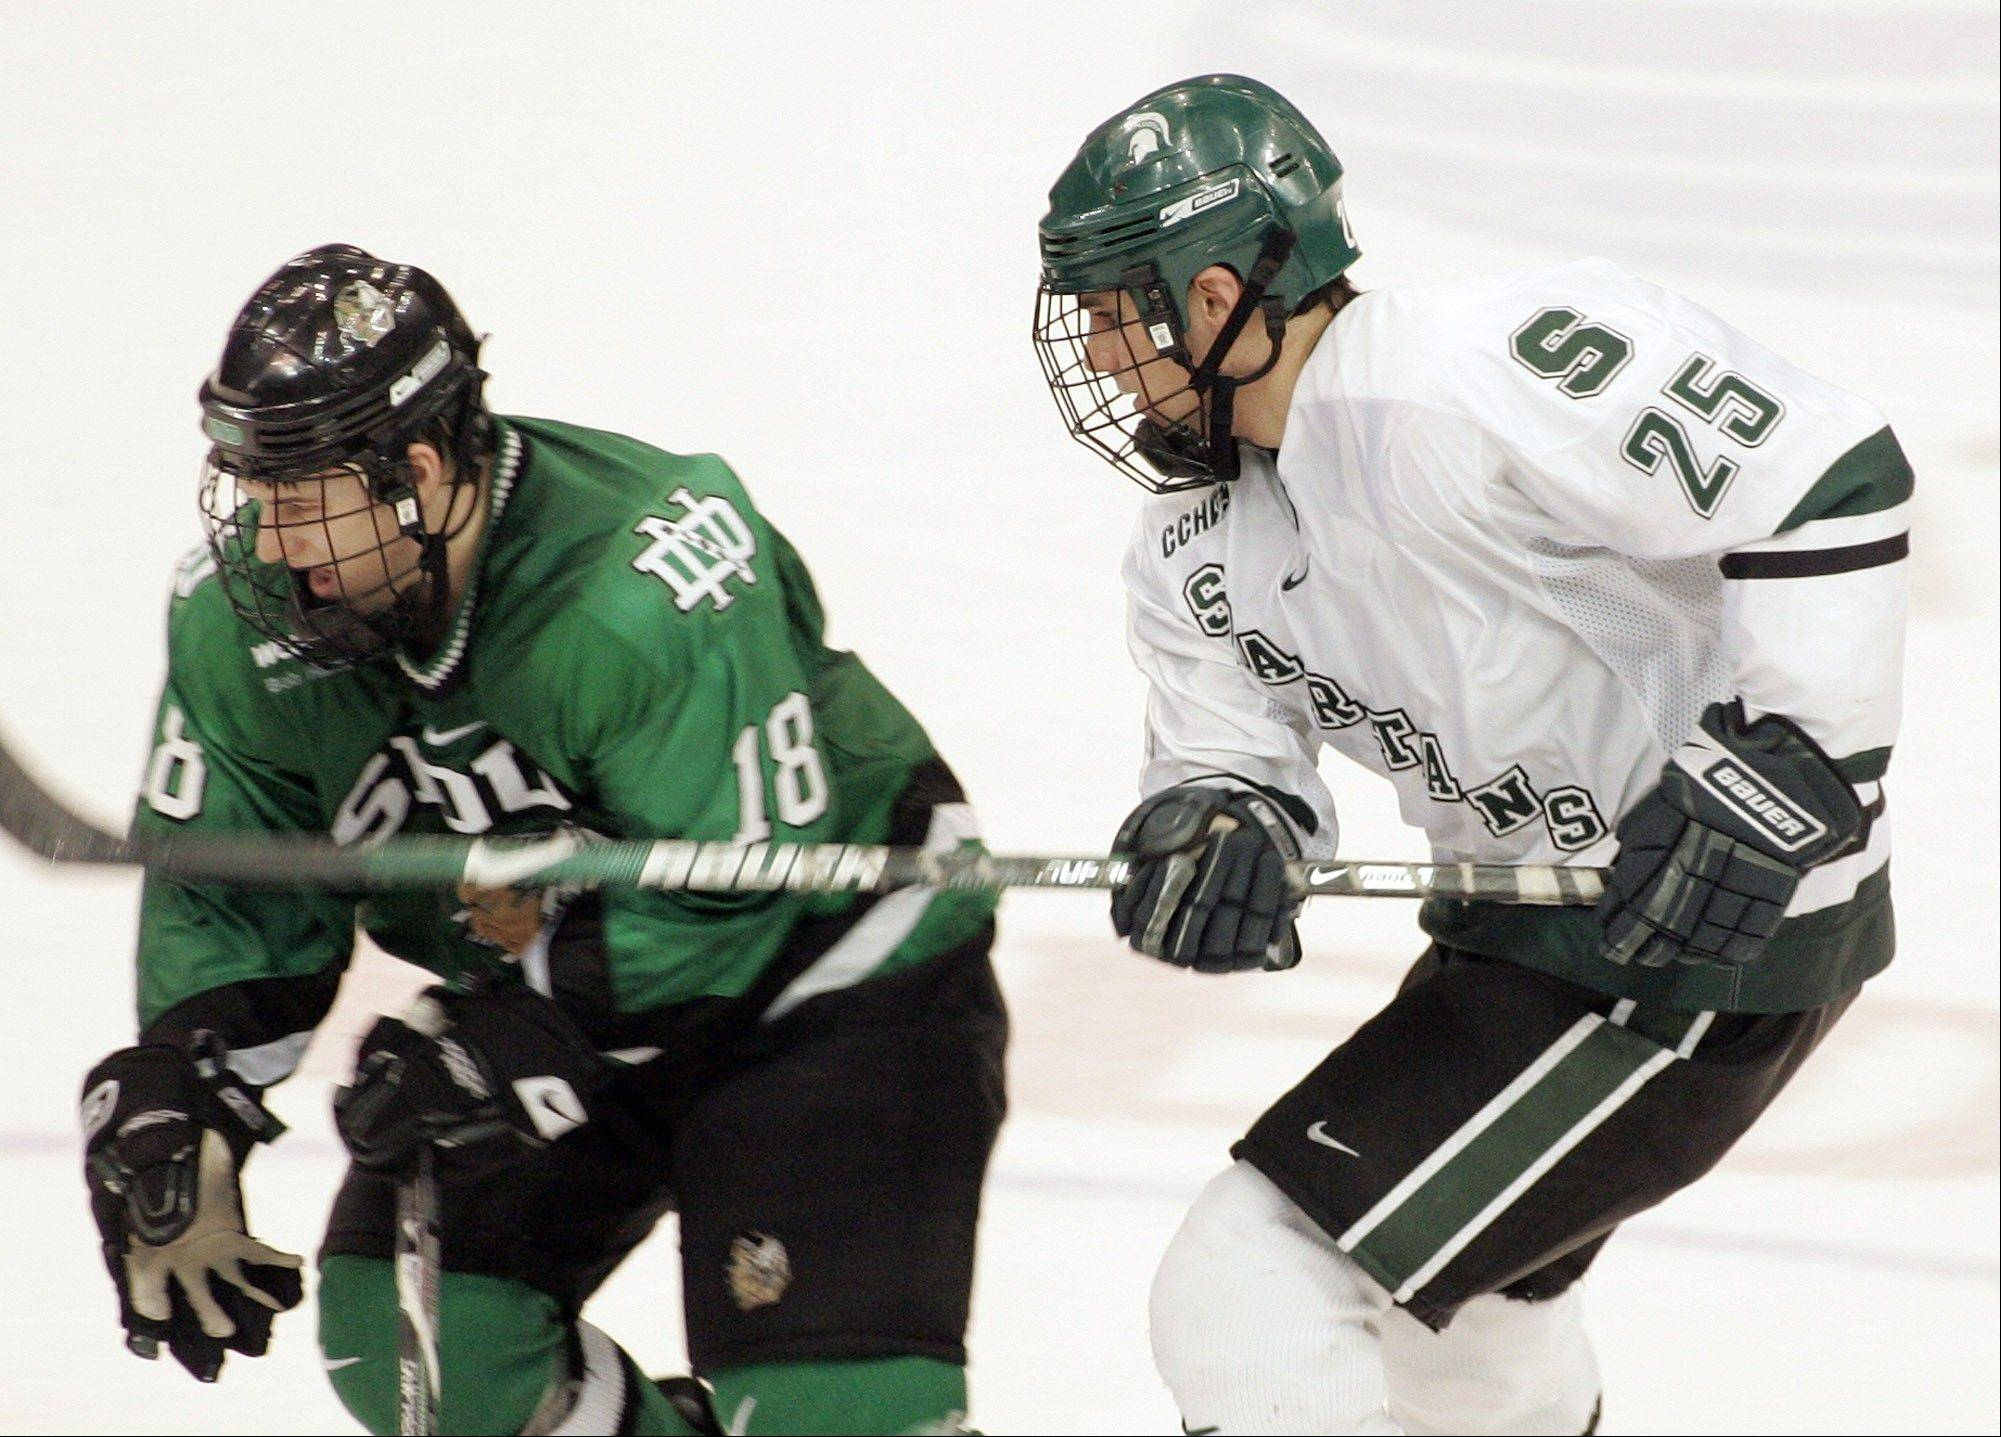 David Toews, left, battled Michigan State�s Corey Tropp in this Great Lakes Invitational college hockey game on Dec. 27, 2008 in Detroit. The Blackhawks acquired Toews, the younger brother of Jonathan, from the New York Islanders on Friday.